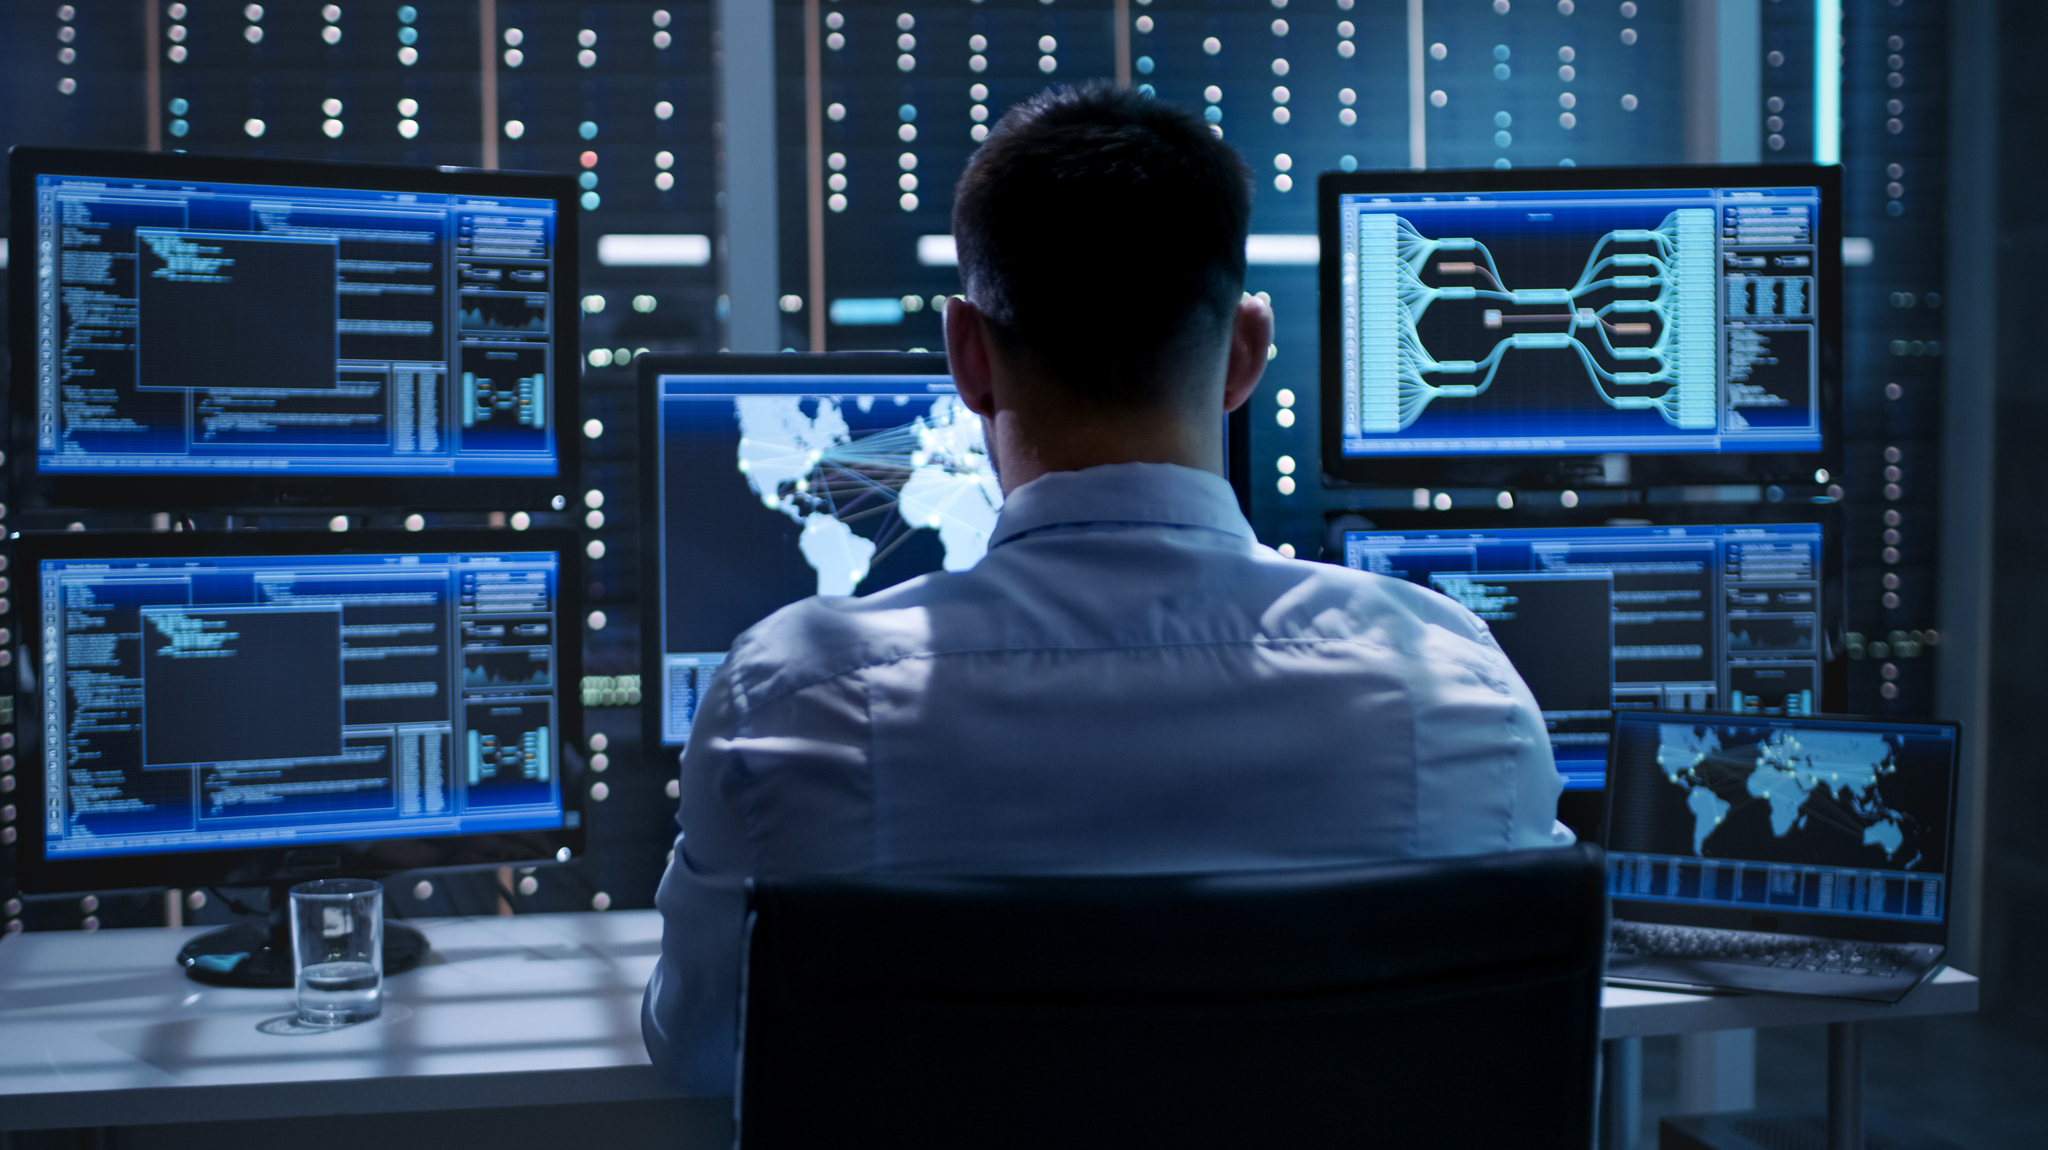 System Security Specialist Working at System Control Center. Room is Full  of Screens Displaying Various Information. - Ole Miss News